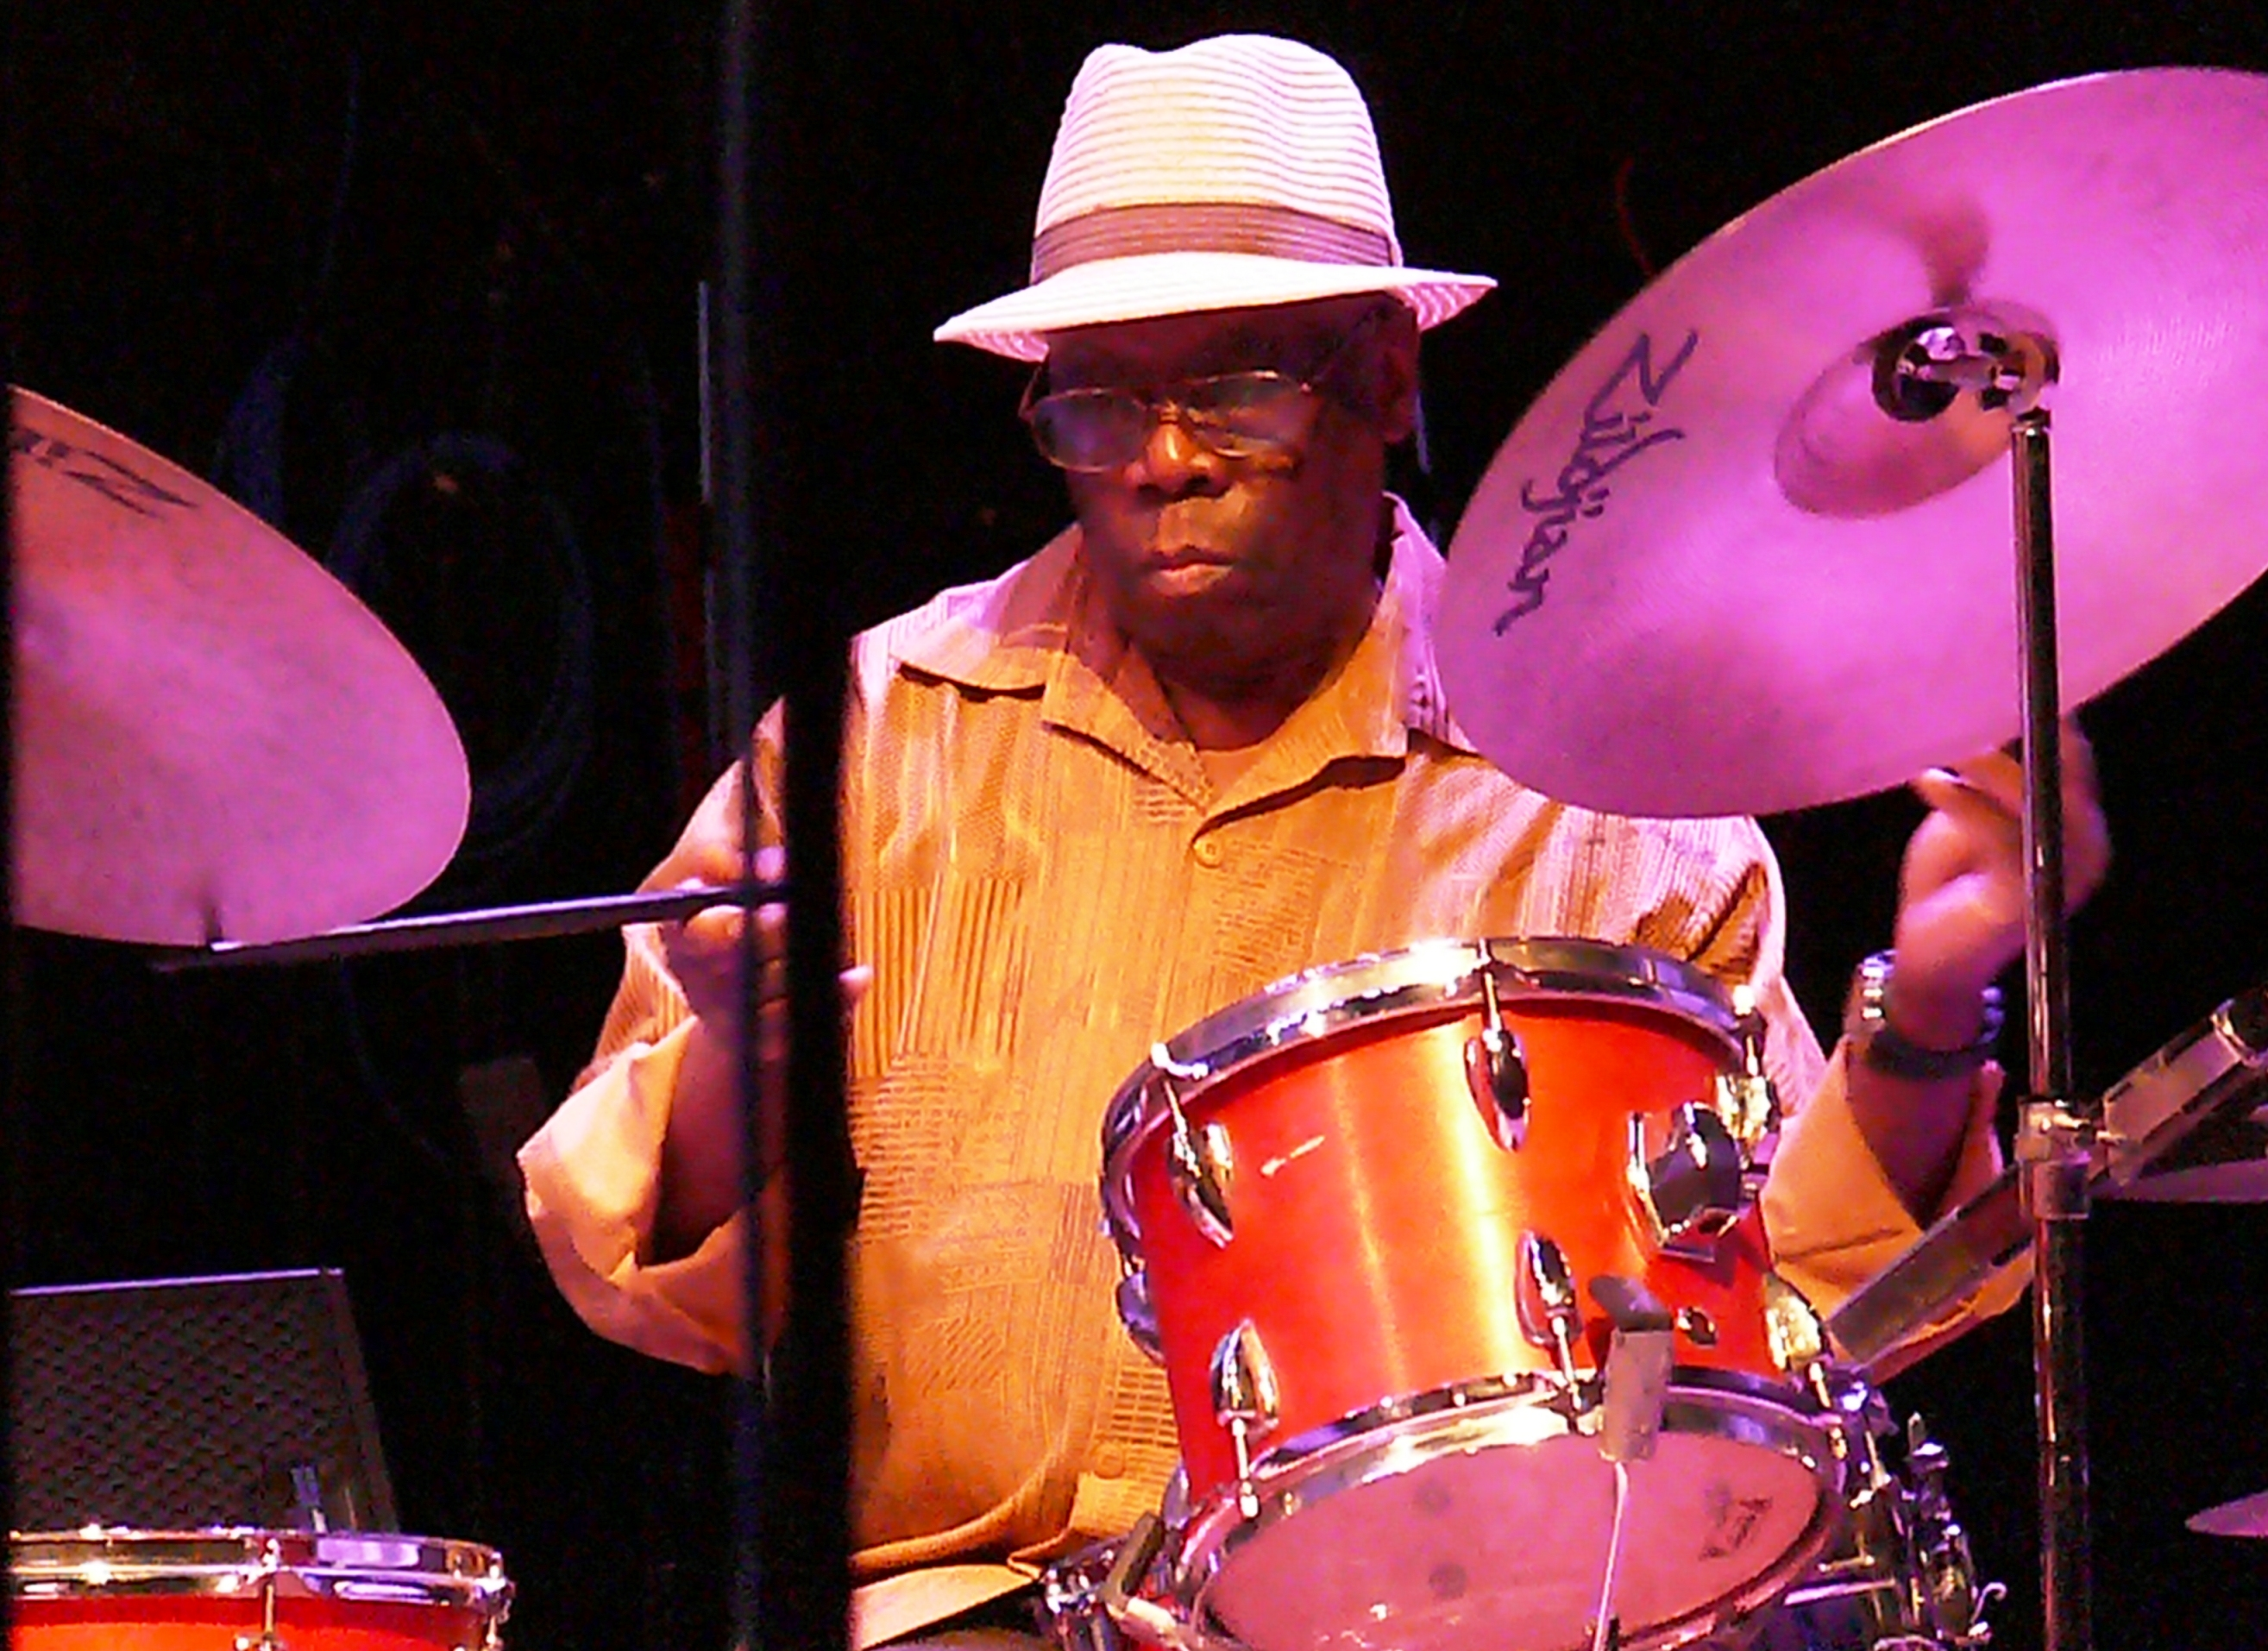 Andrew Cyrille at the Vision Festival in June 2012